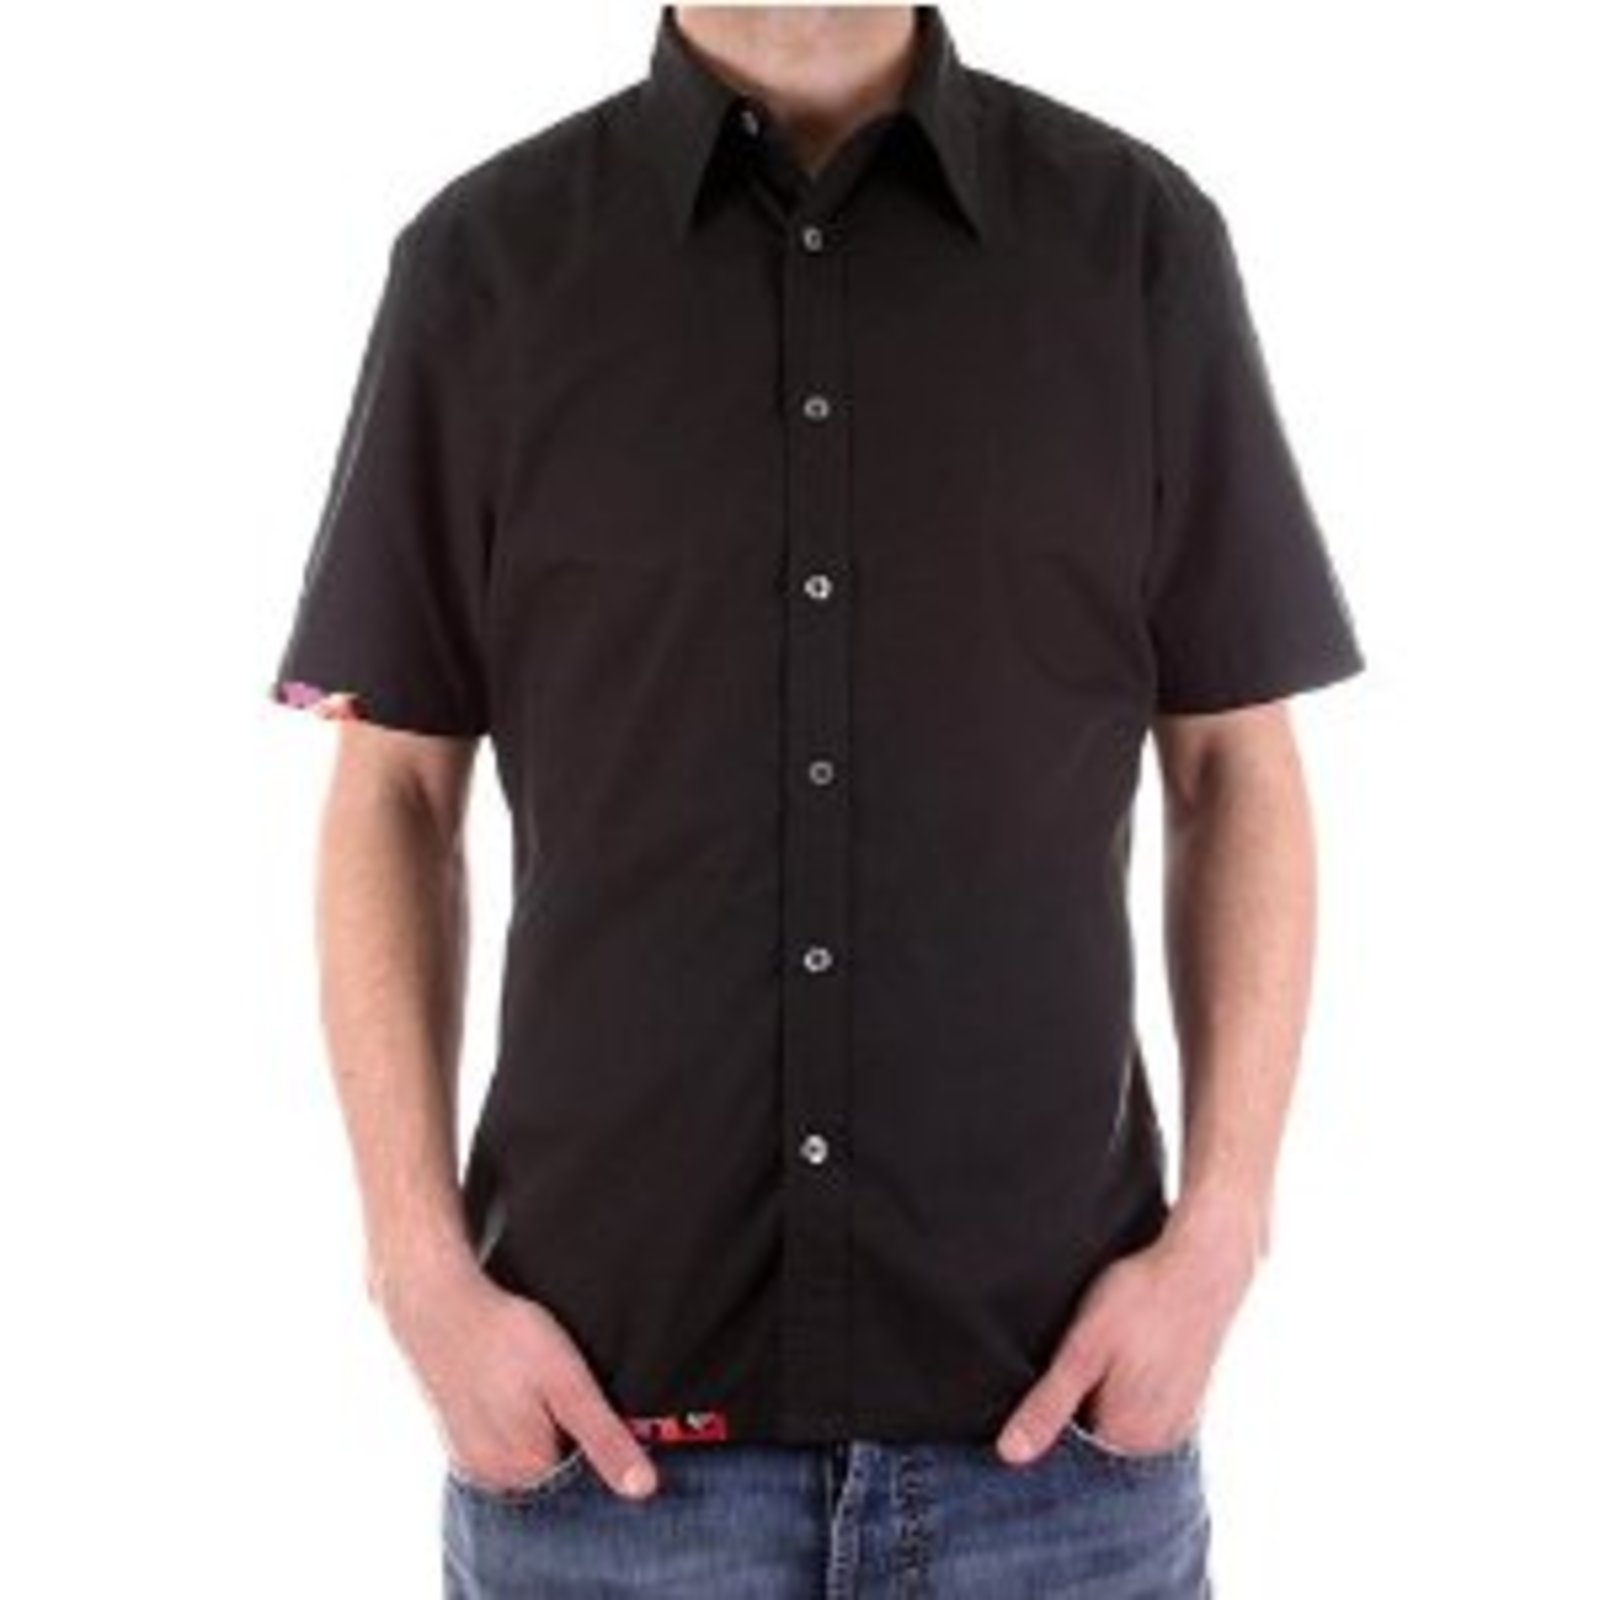 Paul smith casual shirt mens black short sleeve shirt for Mens black short sleeve dress shirt